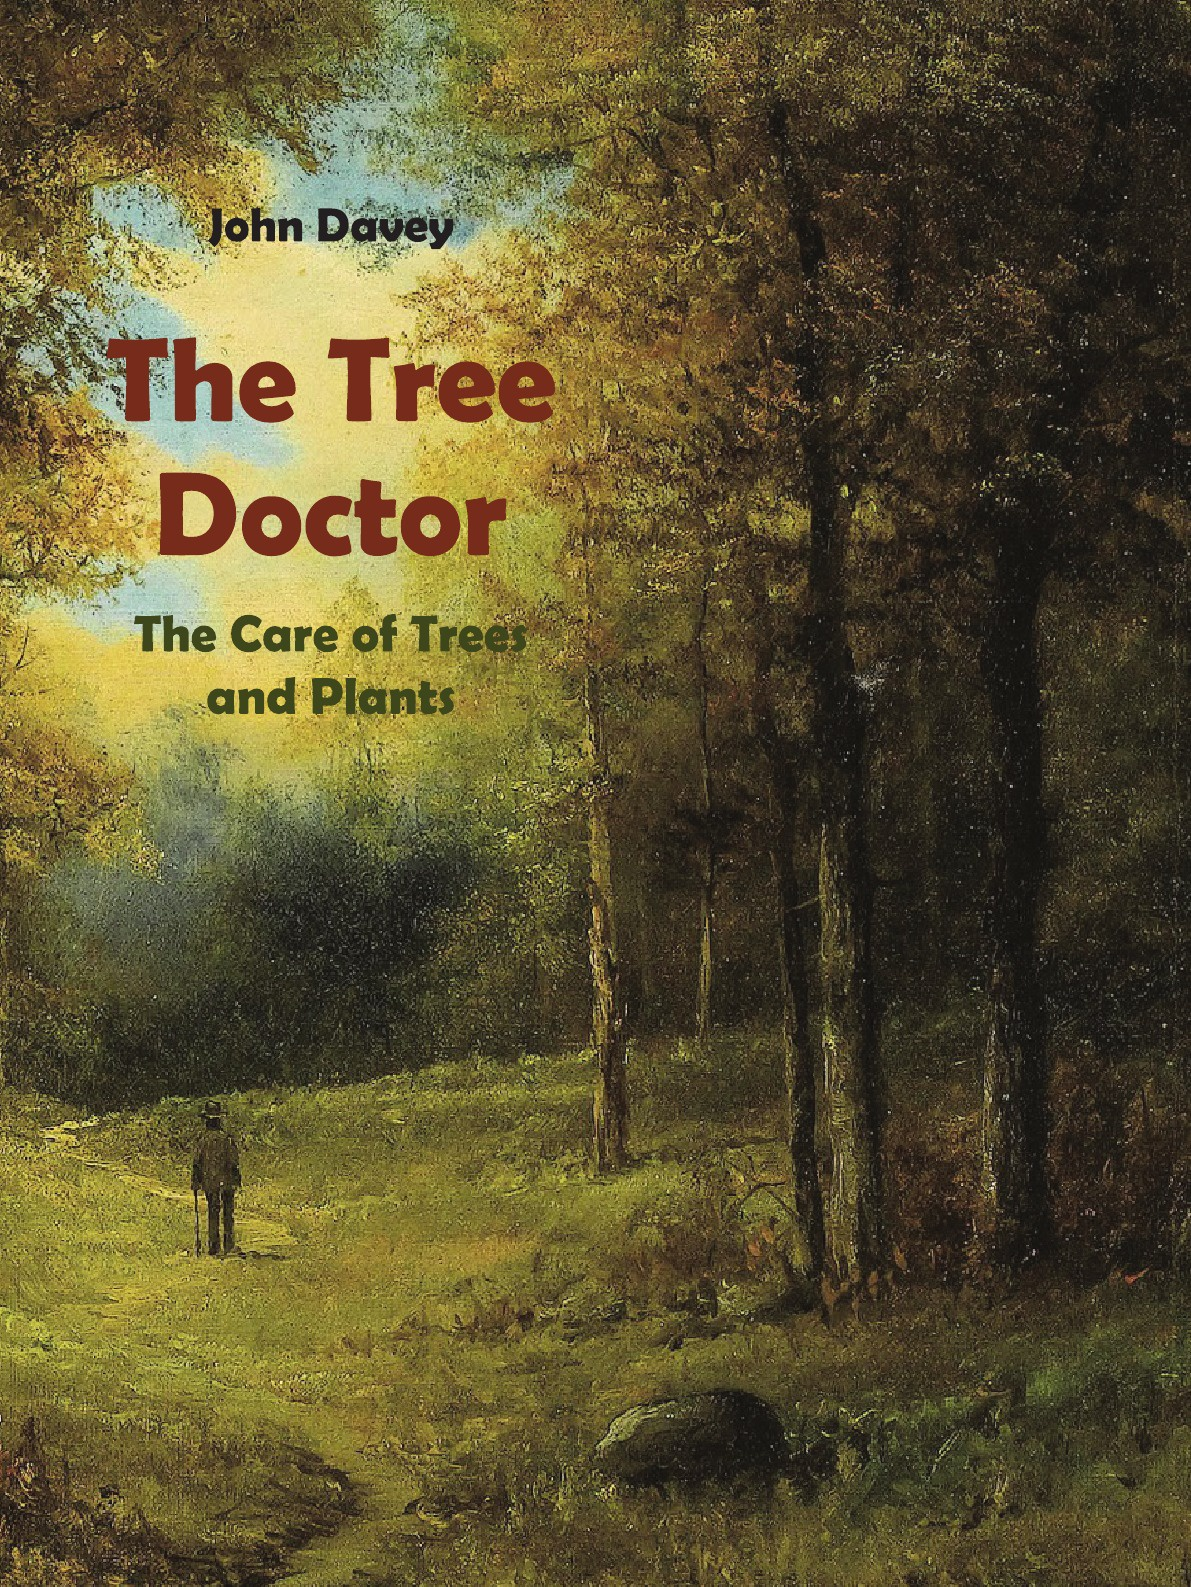 John Davey The Tree Doctor. The Care of Trees and Plants (with Photographs)